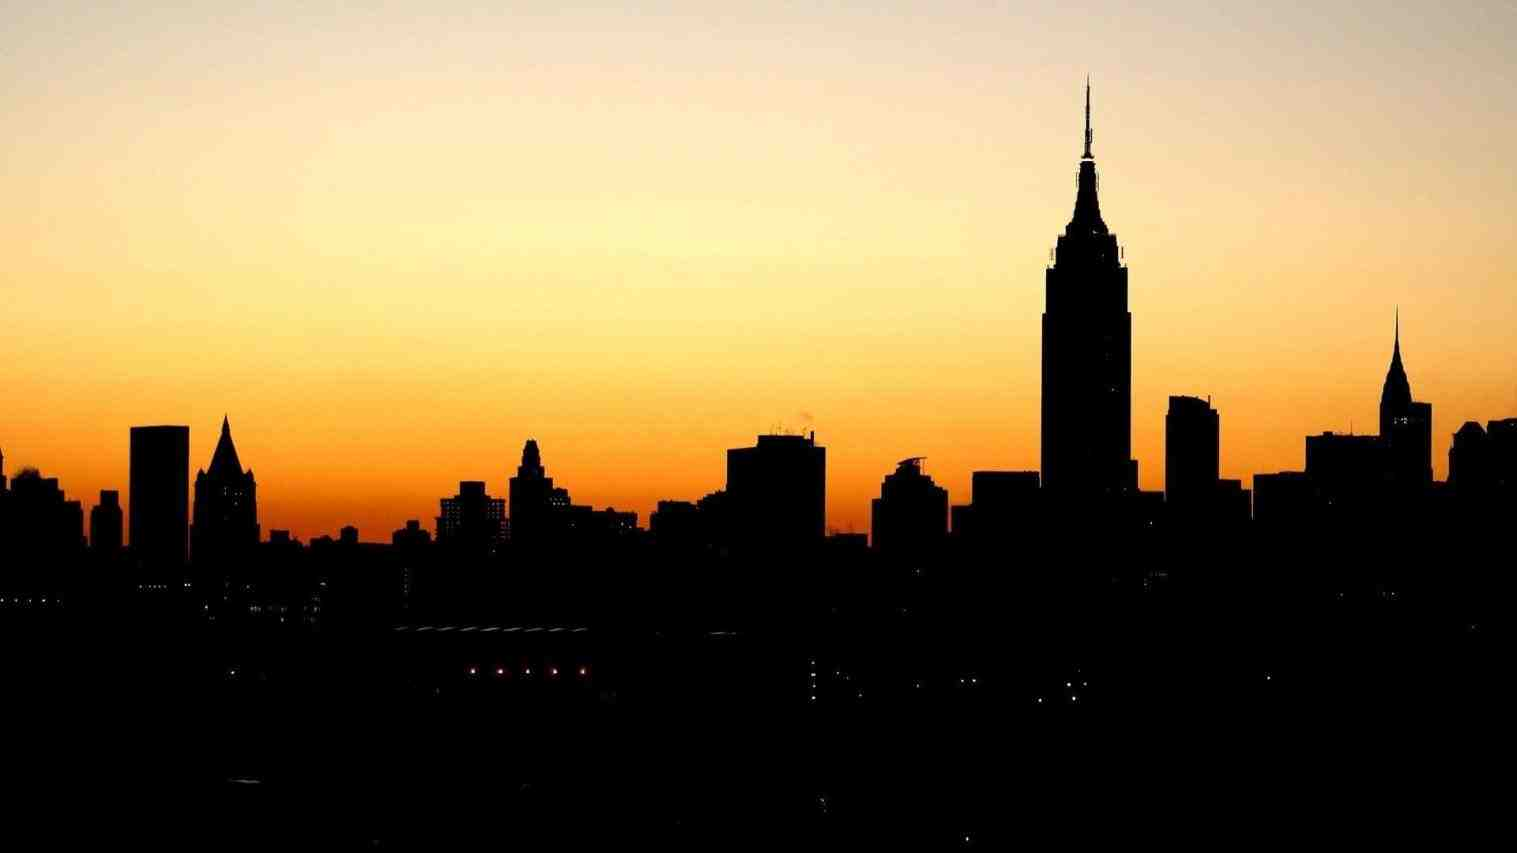 New York Building Silhouette at GetDrawings.com | Free for personal ...